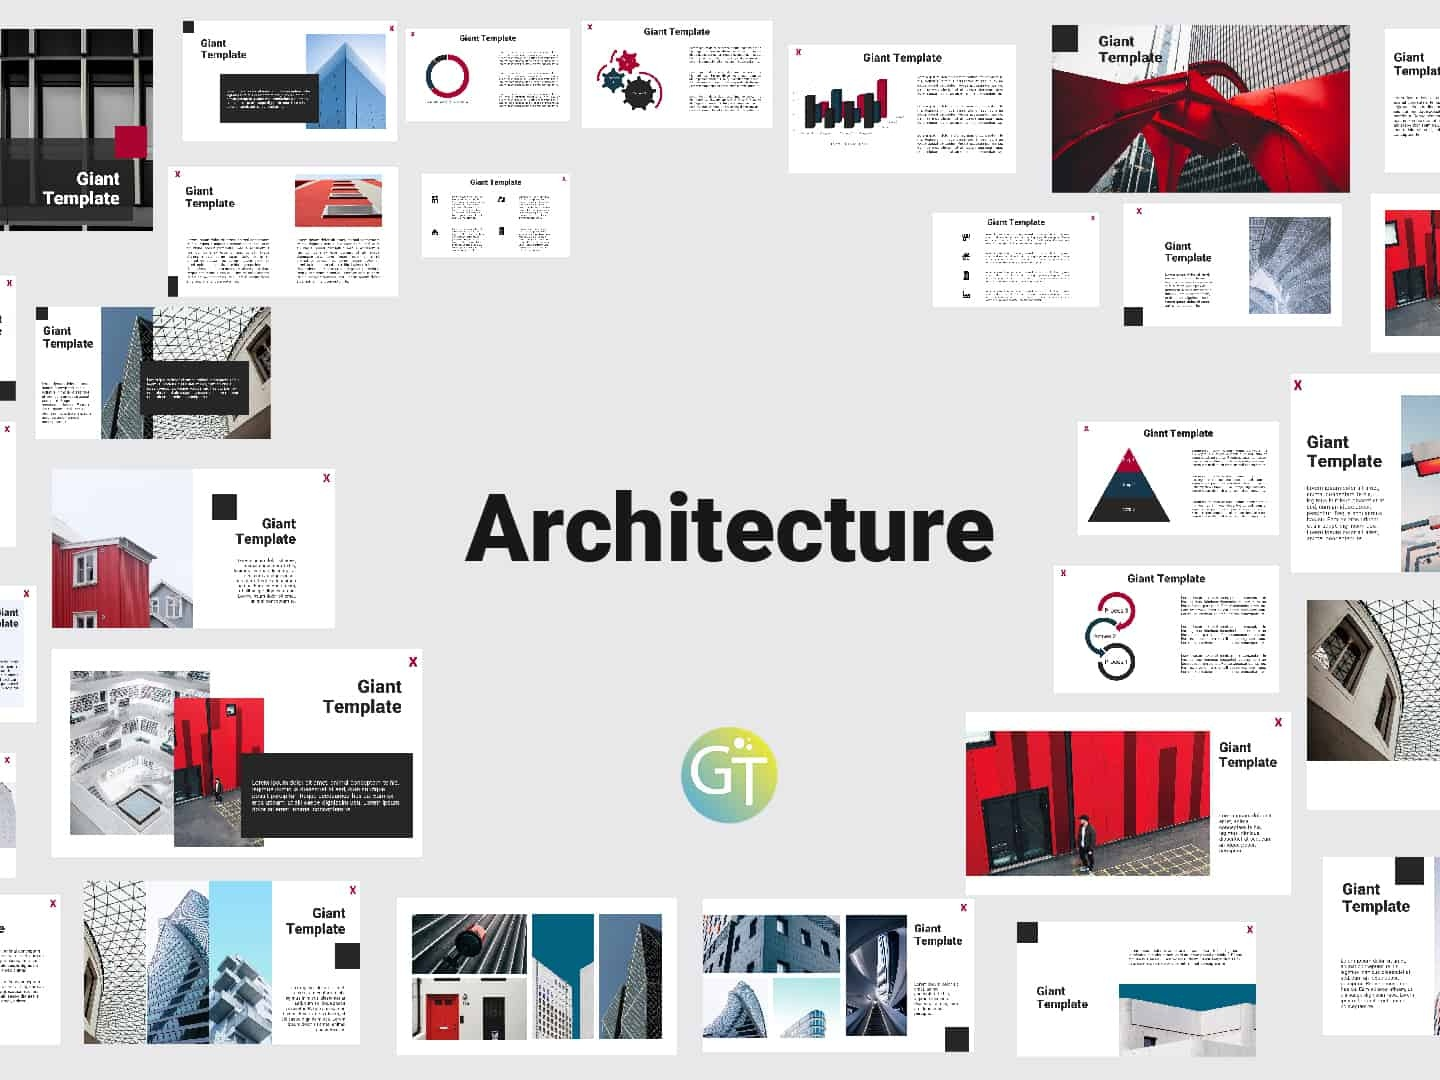 Architecture Free Powerpoint Template By Giant Template On